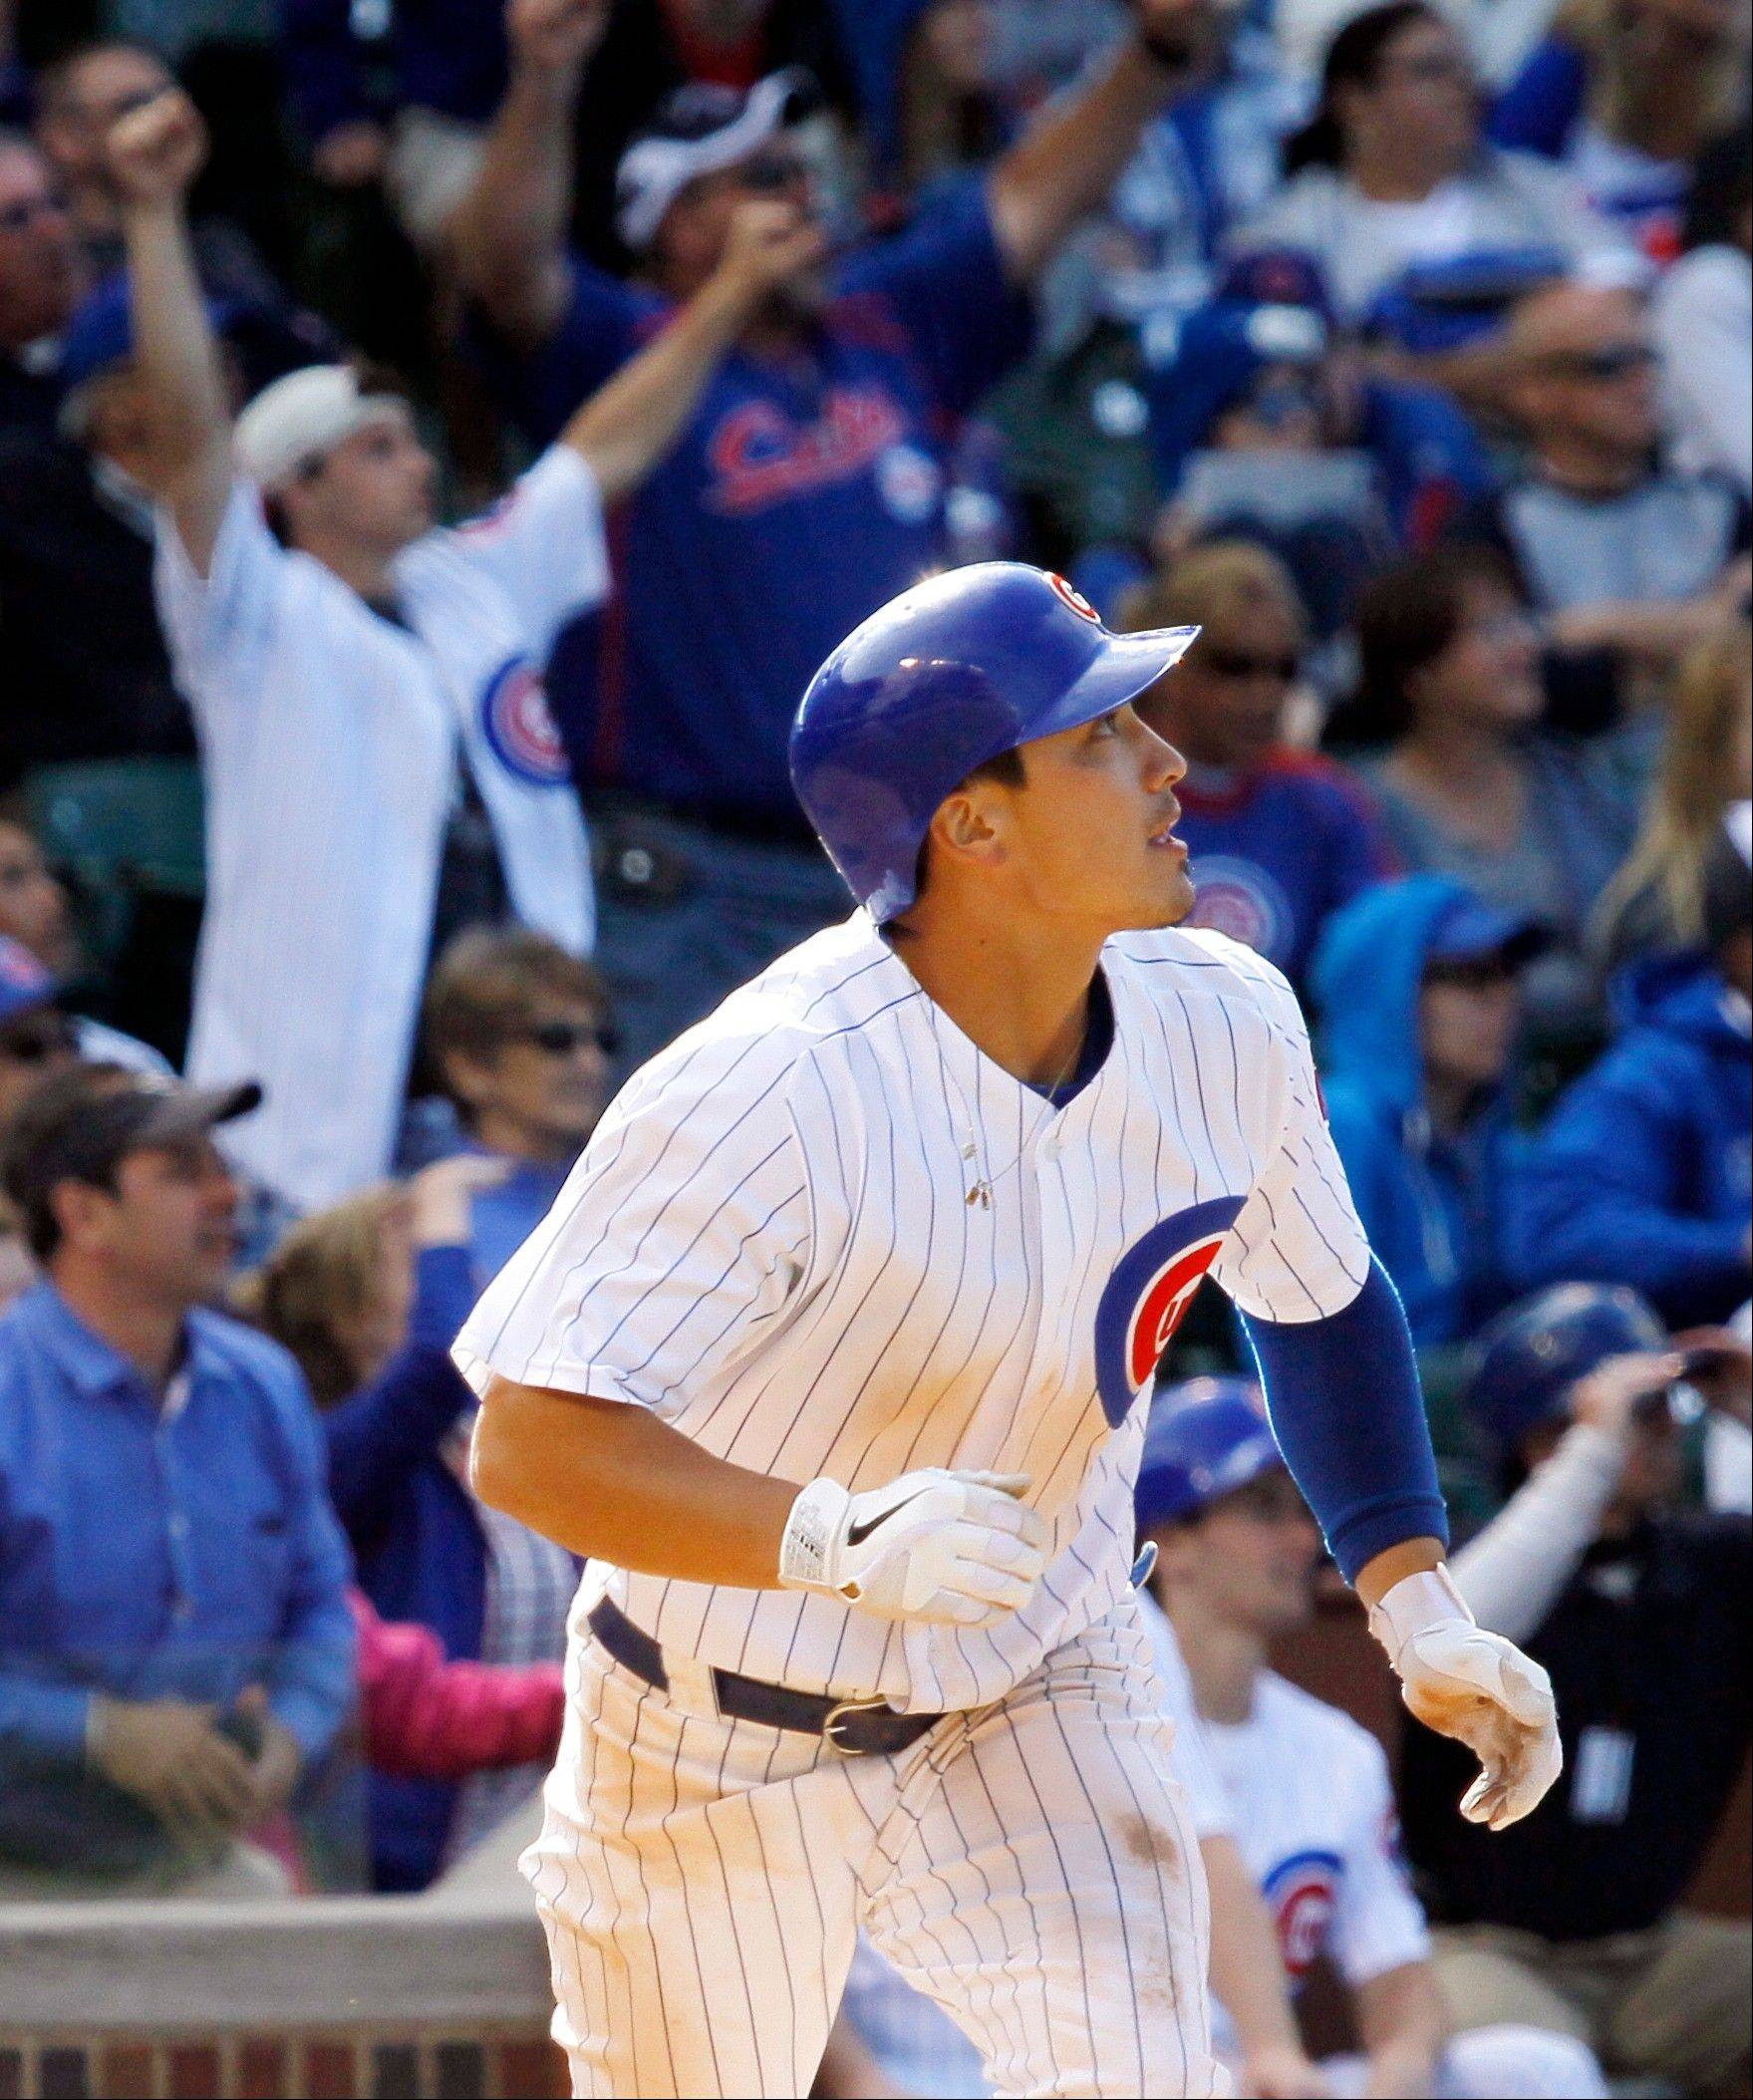 The Cubs' Darwin Barney watches his walk-off, 2-run home run off Padres relief pitcher Dale Thayer in the ninth inning Wednesday at Wrigley Field.